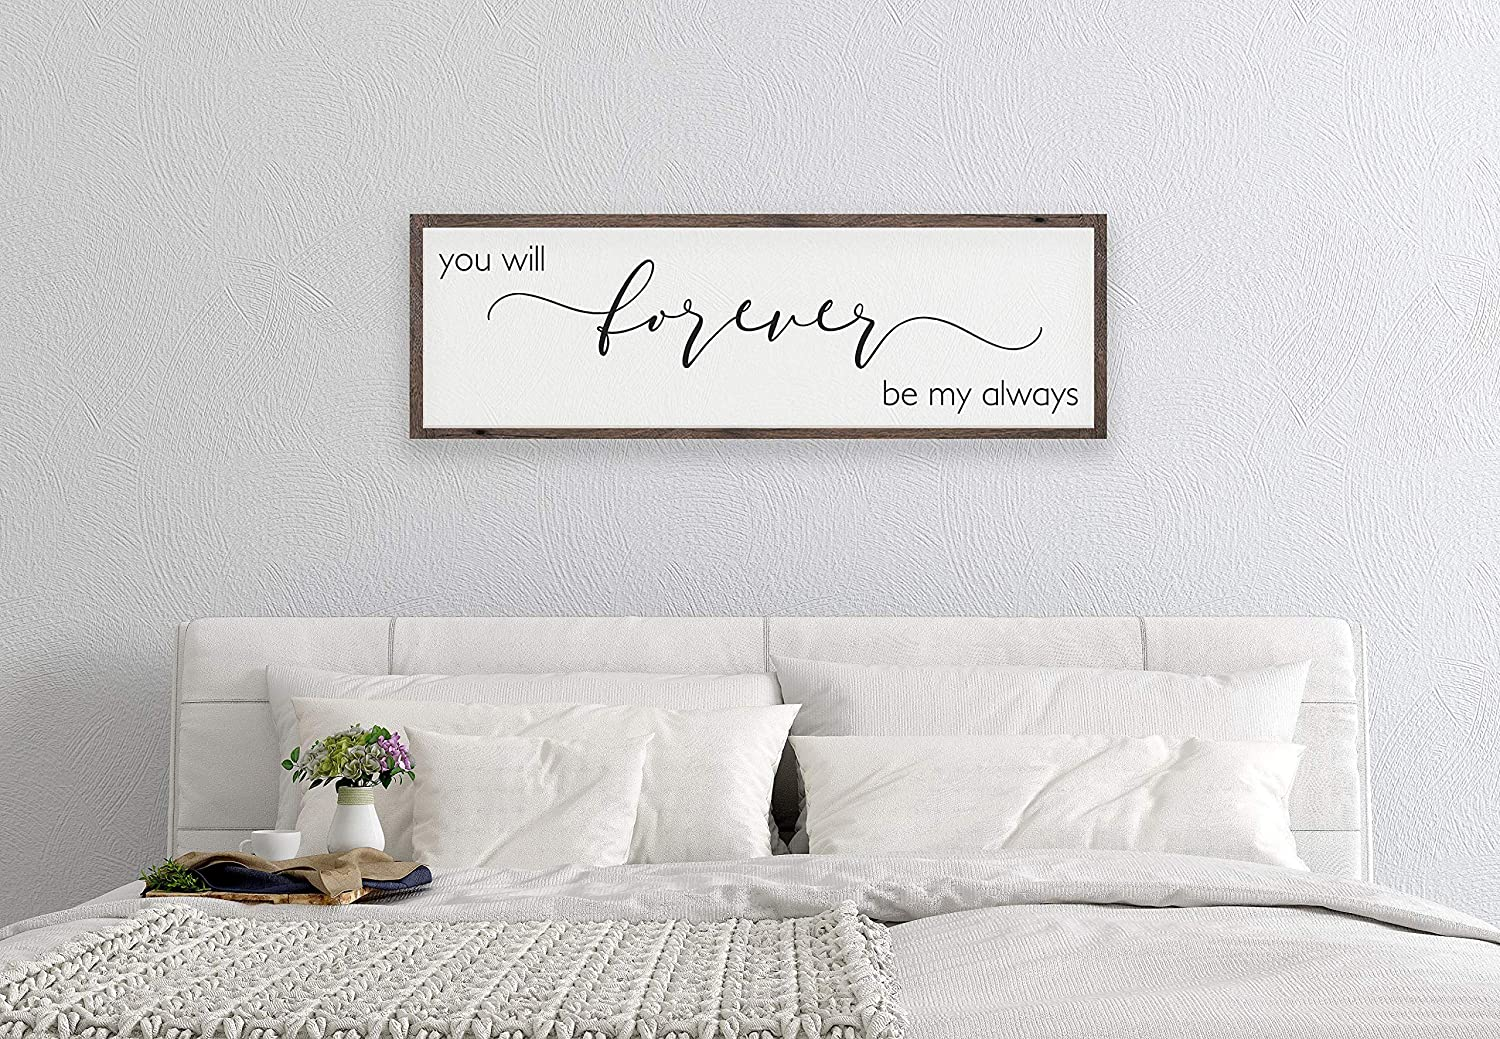 DKISEE Bedroom Wall Decor Over The Bed, You Will Forever Be My Always Sign, Bedroom Wall Decor, Bedroom Sign Above Bed, Master Bedroom Sign, Wood Sign 5.9x20 inches